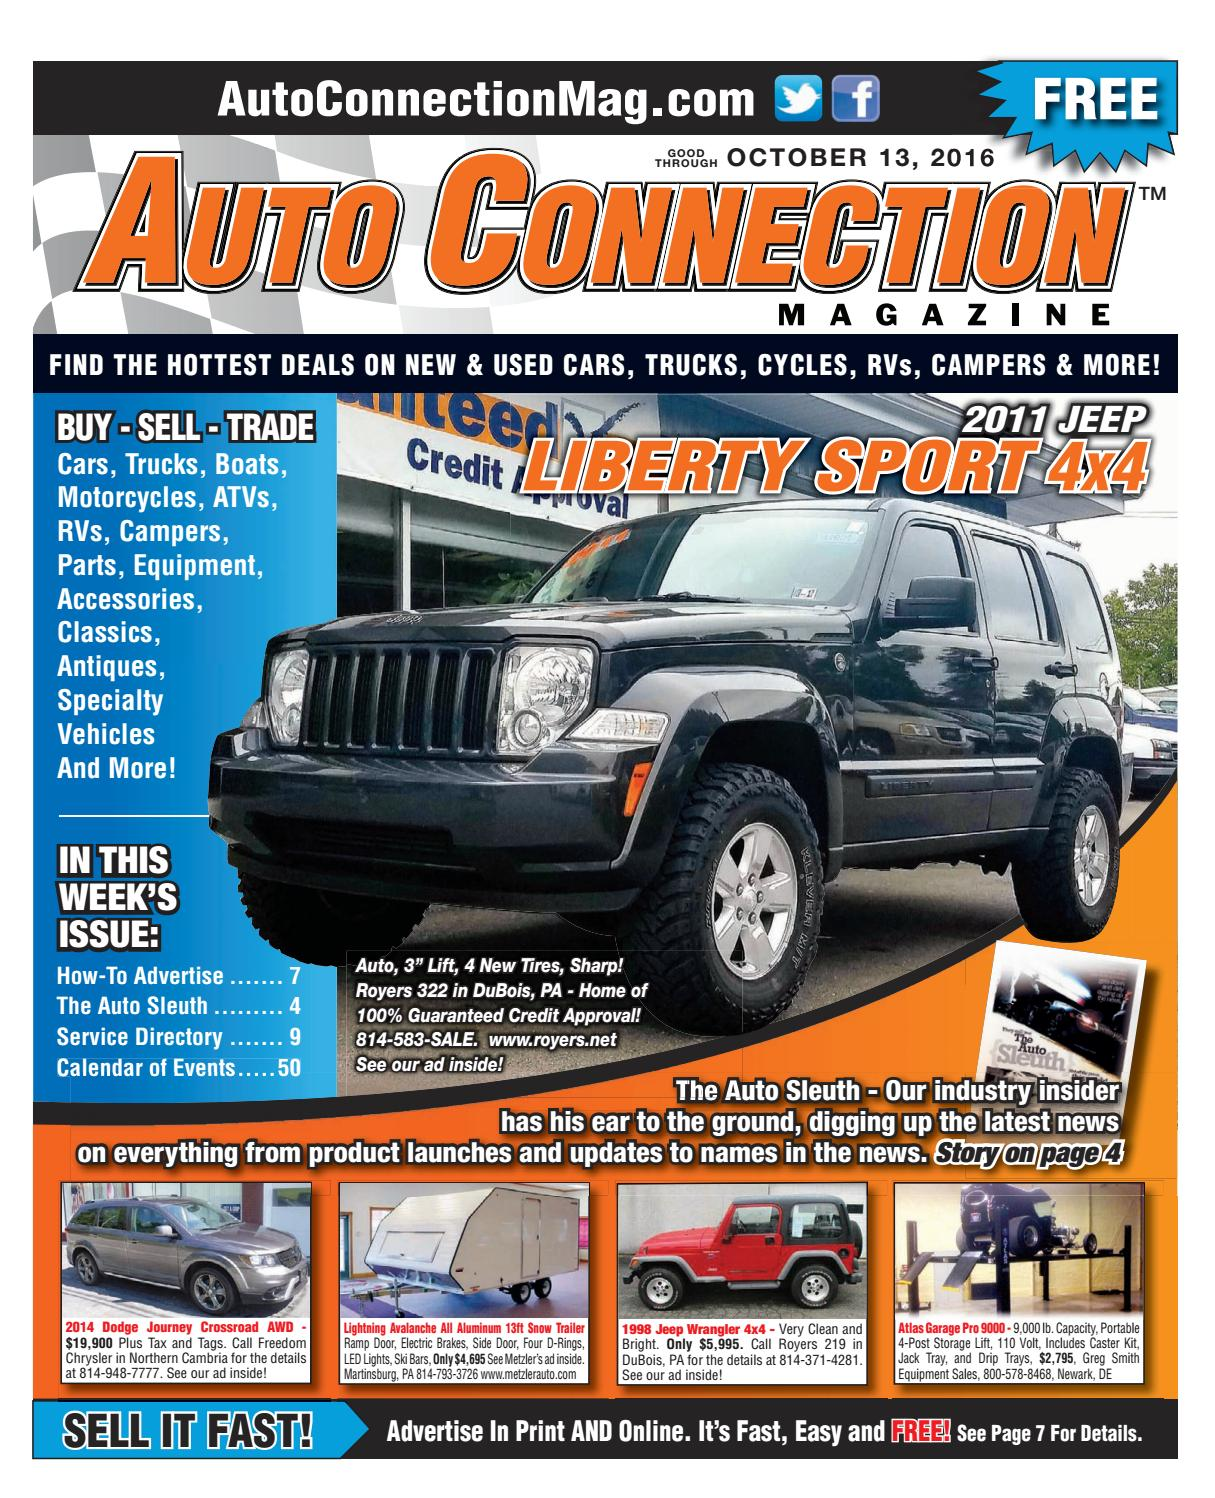 10-13-16 Auto Connection Magazine by Auto Connection Magazine - issuu